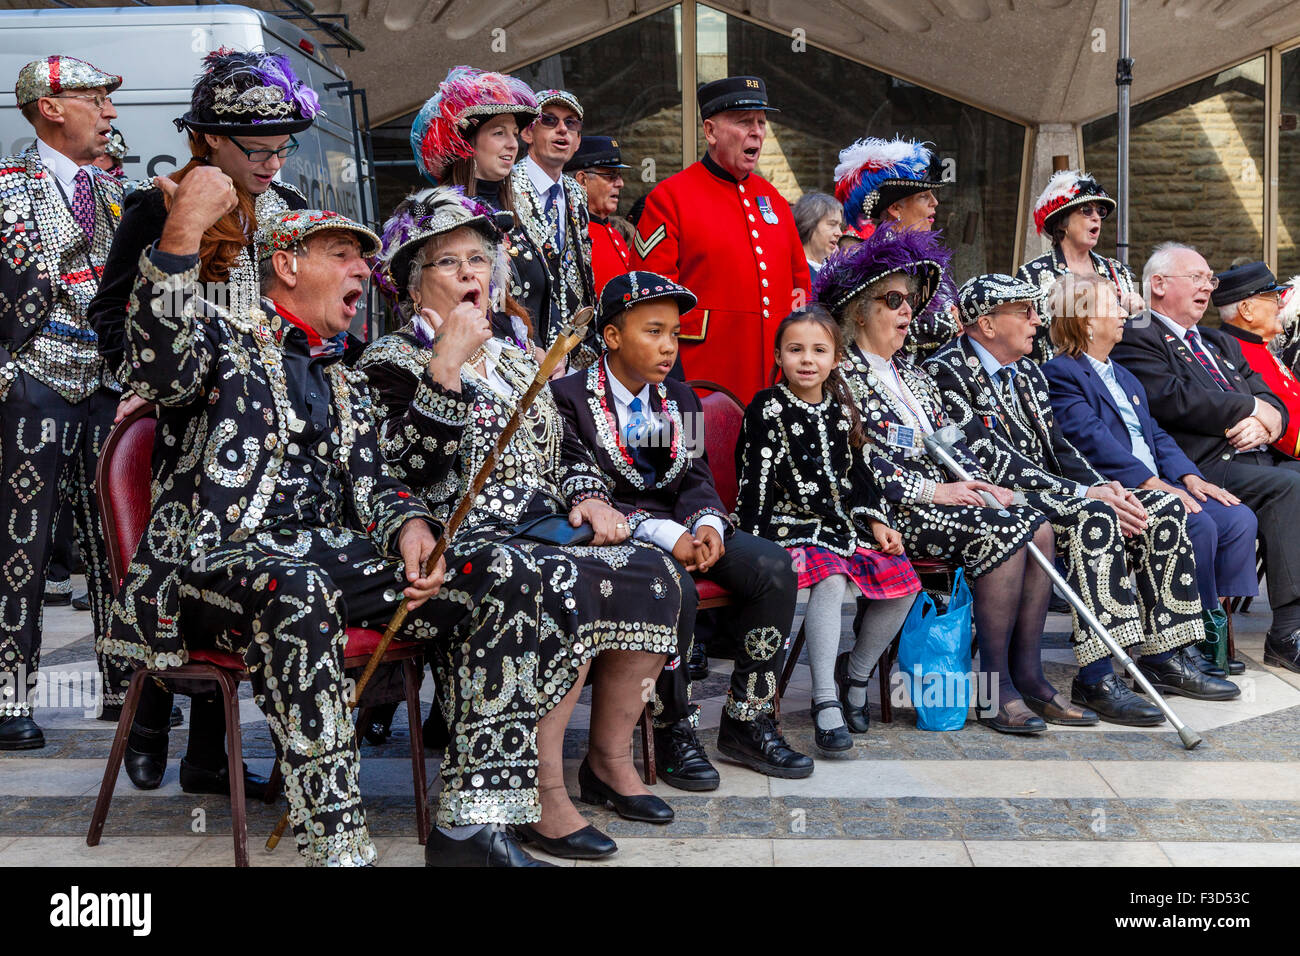 The Annual Pearly Kings and Queens Harvest Festival Held At The Guildhall, London, UK - Stock Image